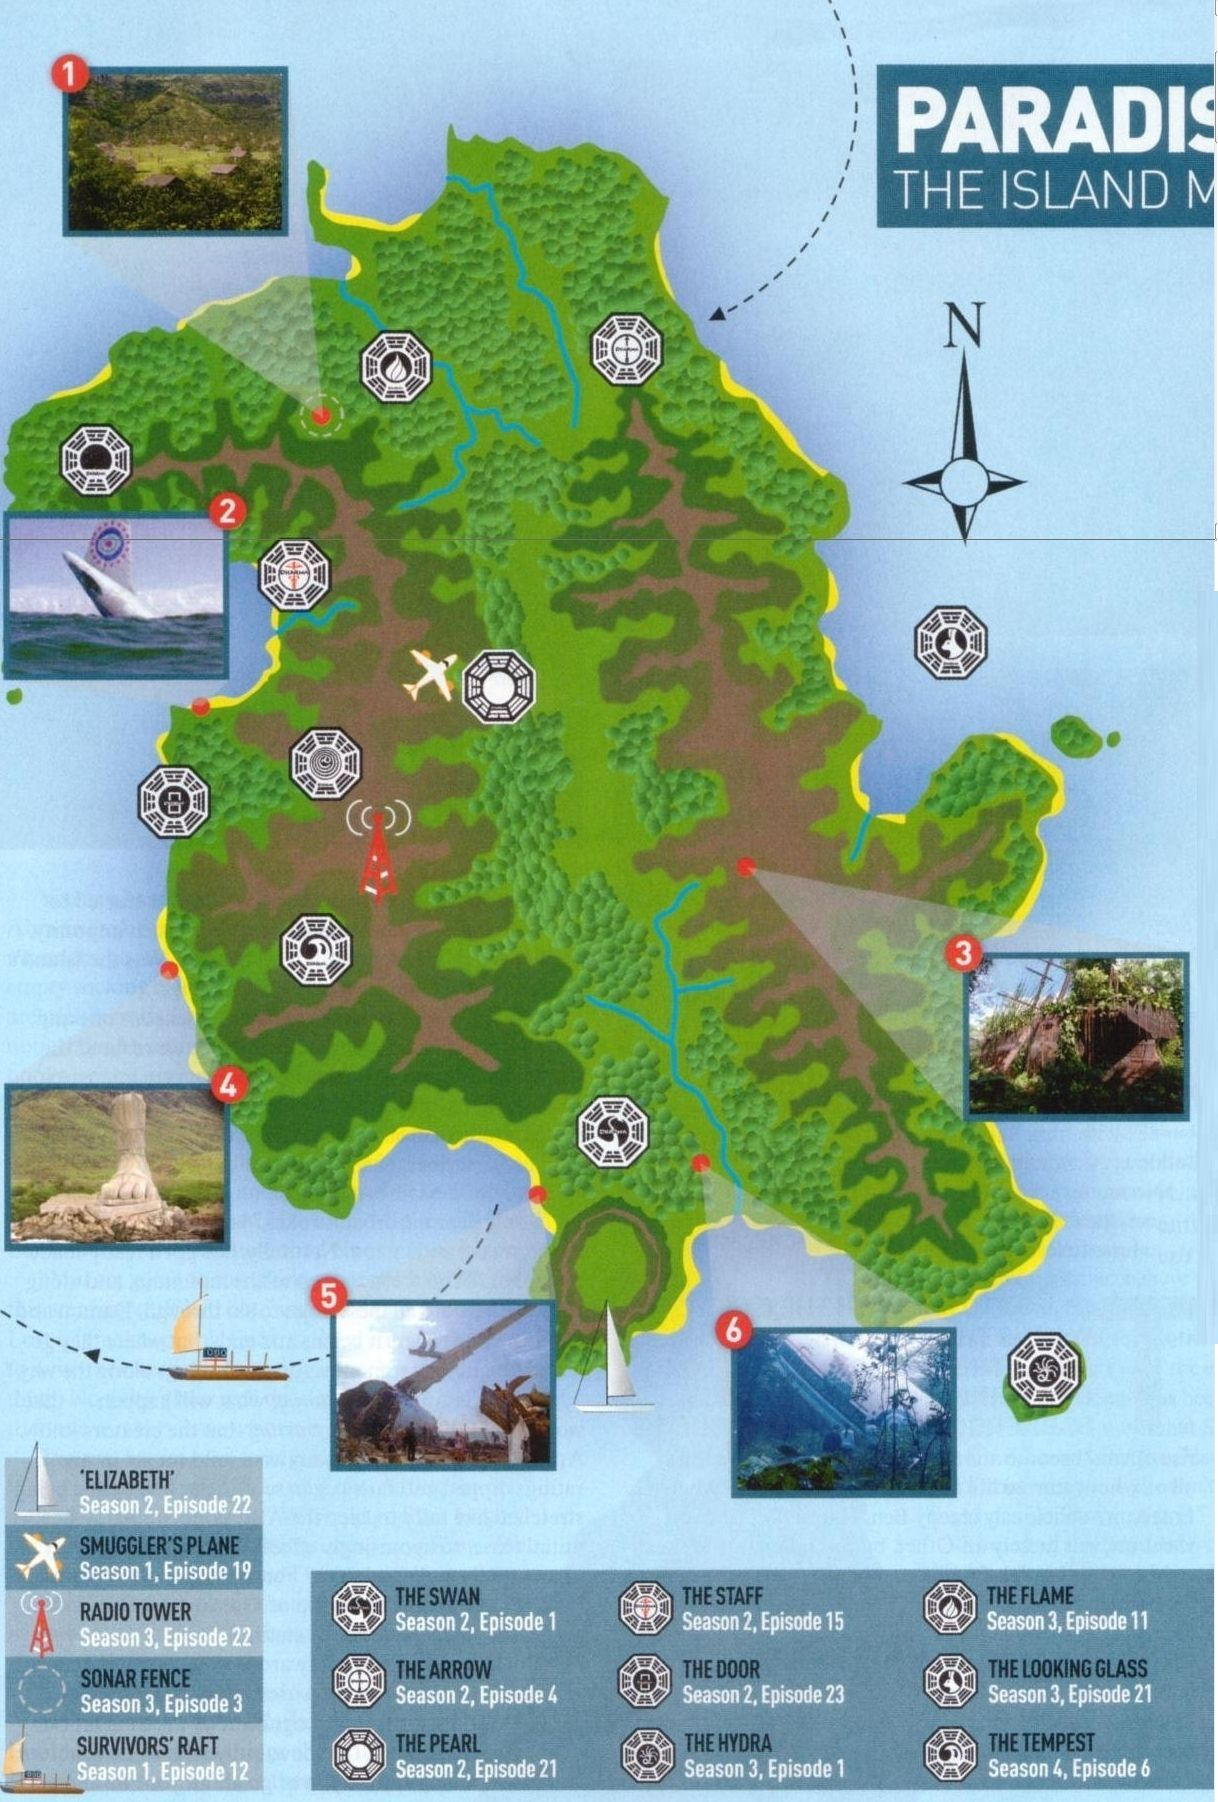 Lost Island Map By Empire Magazine Lost Photo Welcome To Www Visualtshirt Com Shop Your Perfect Trav Lost Tv Show Island Map Lost